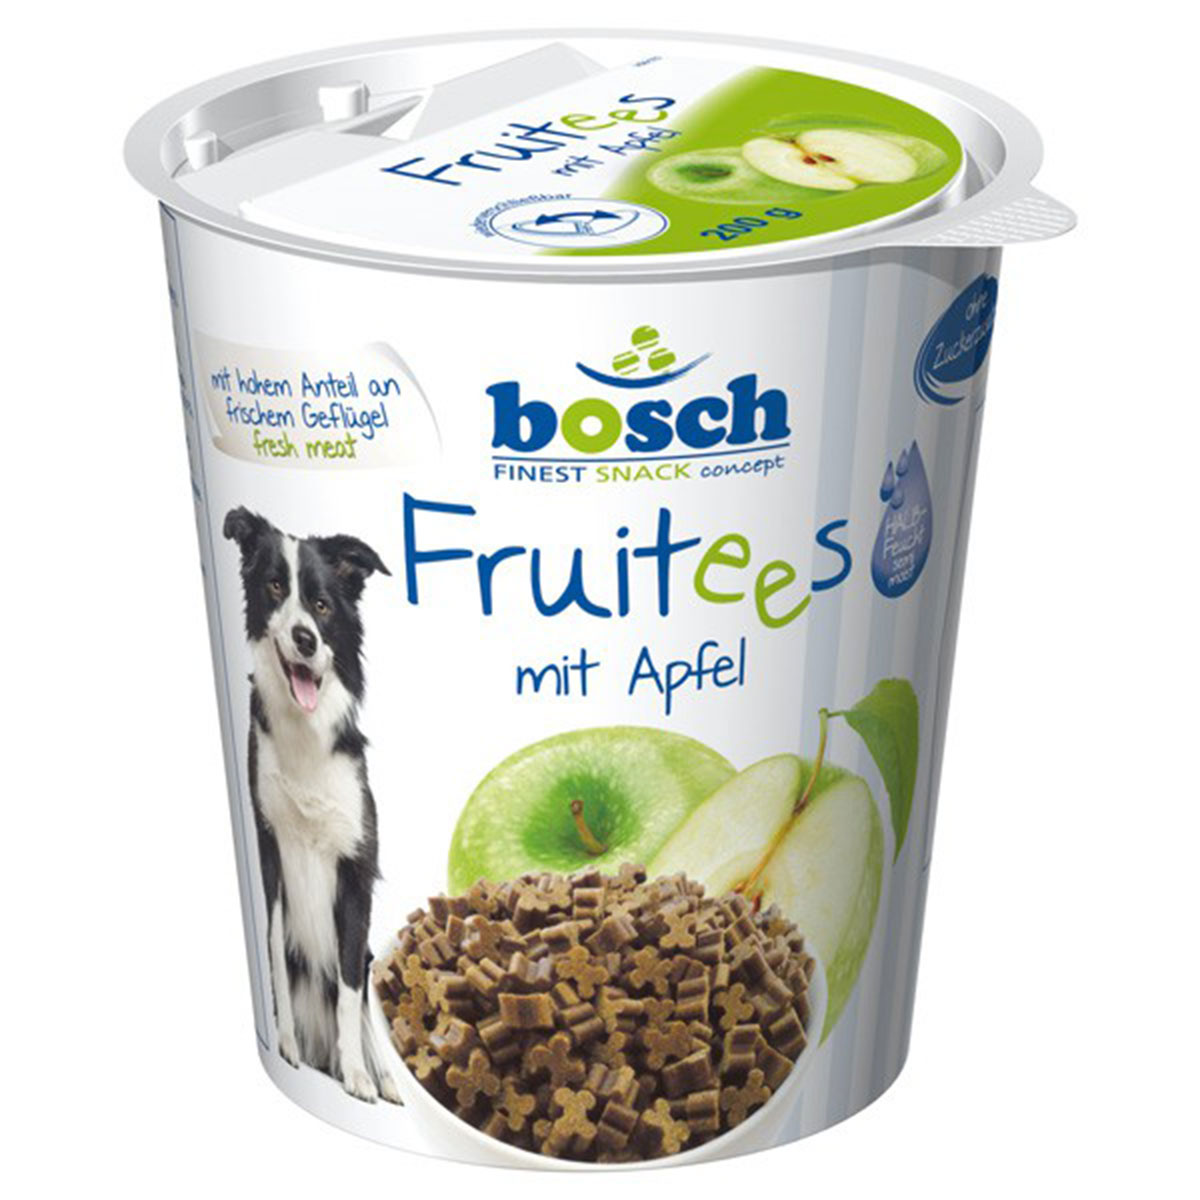 bosch fruitees hundesnack 200g g nstig kaufen bei zooroyal. Black Bedroom Furniture Sets. Home Design Ideas